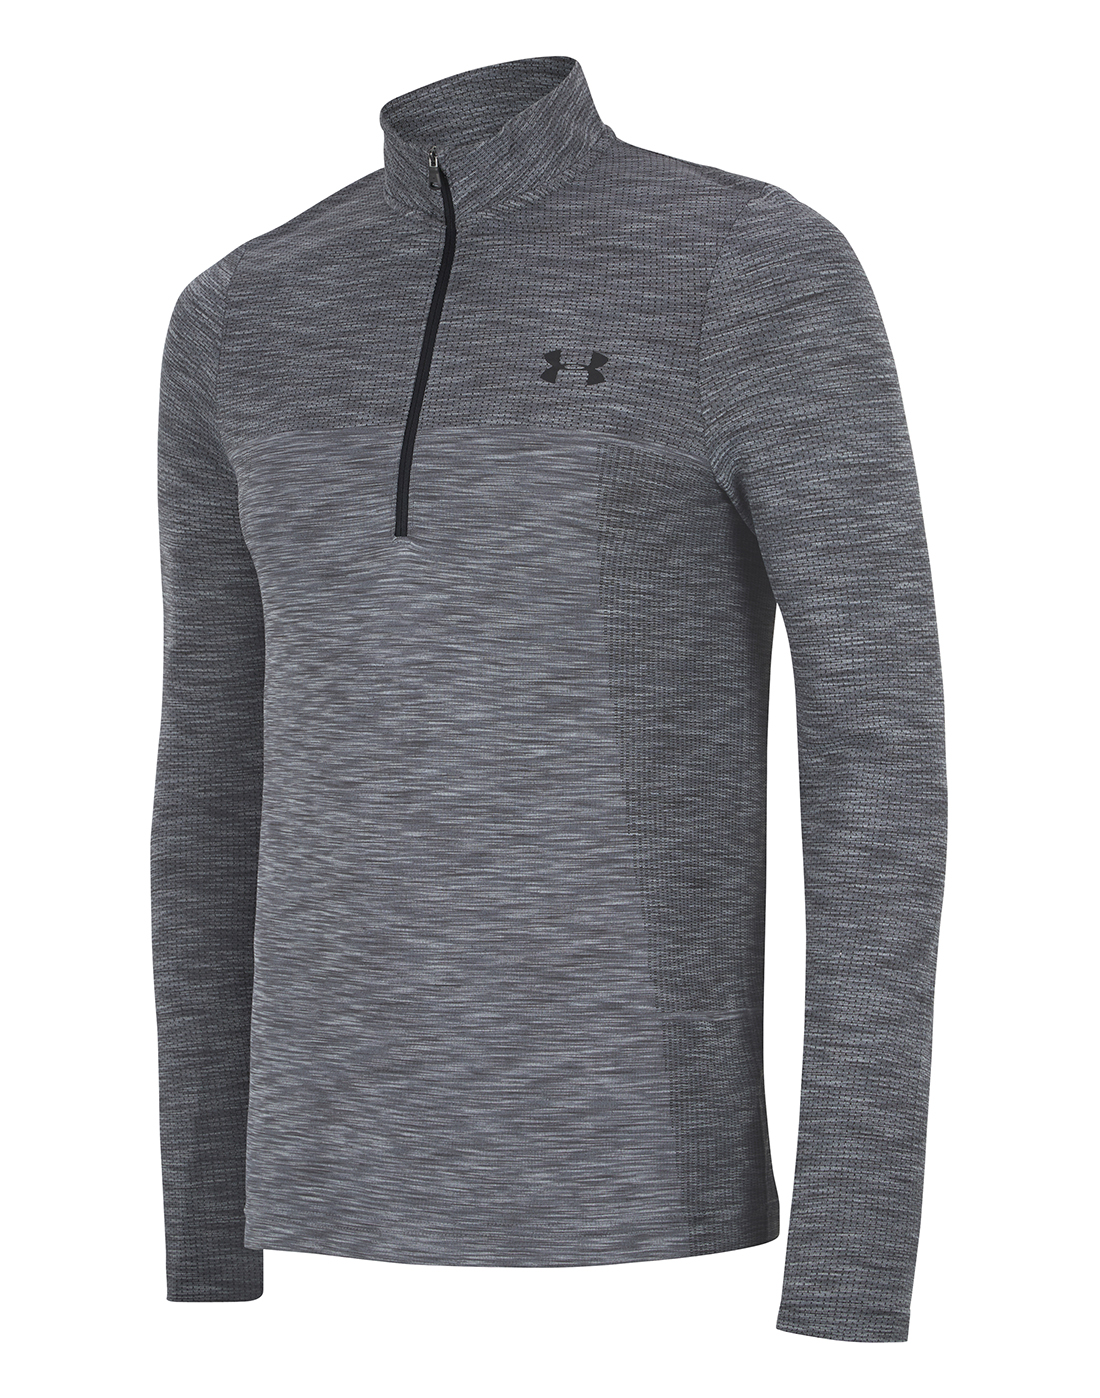 a8348732 Under Armour Mens Siphon Half Zip | Life Style Sports